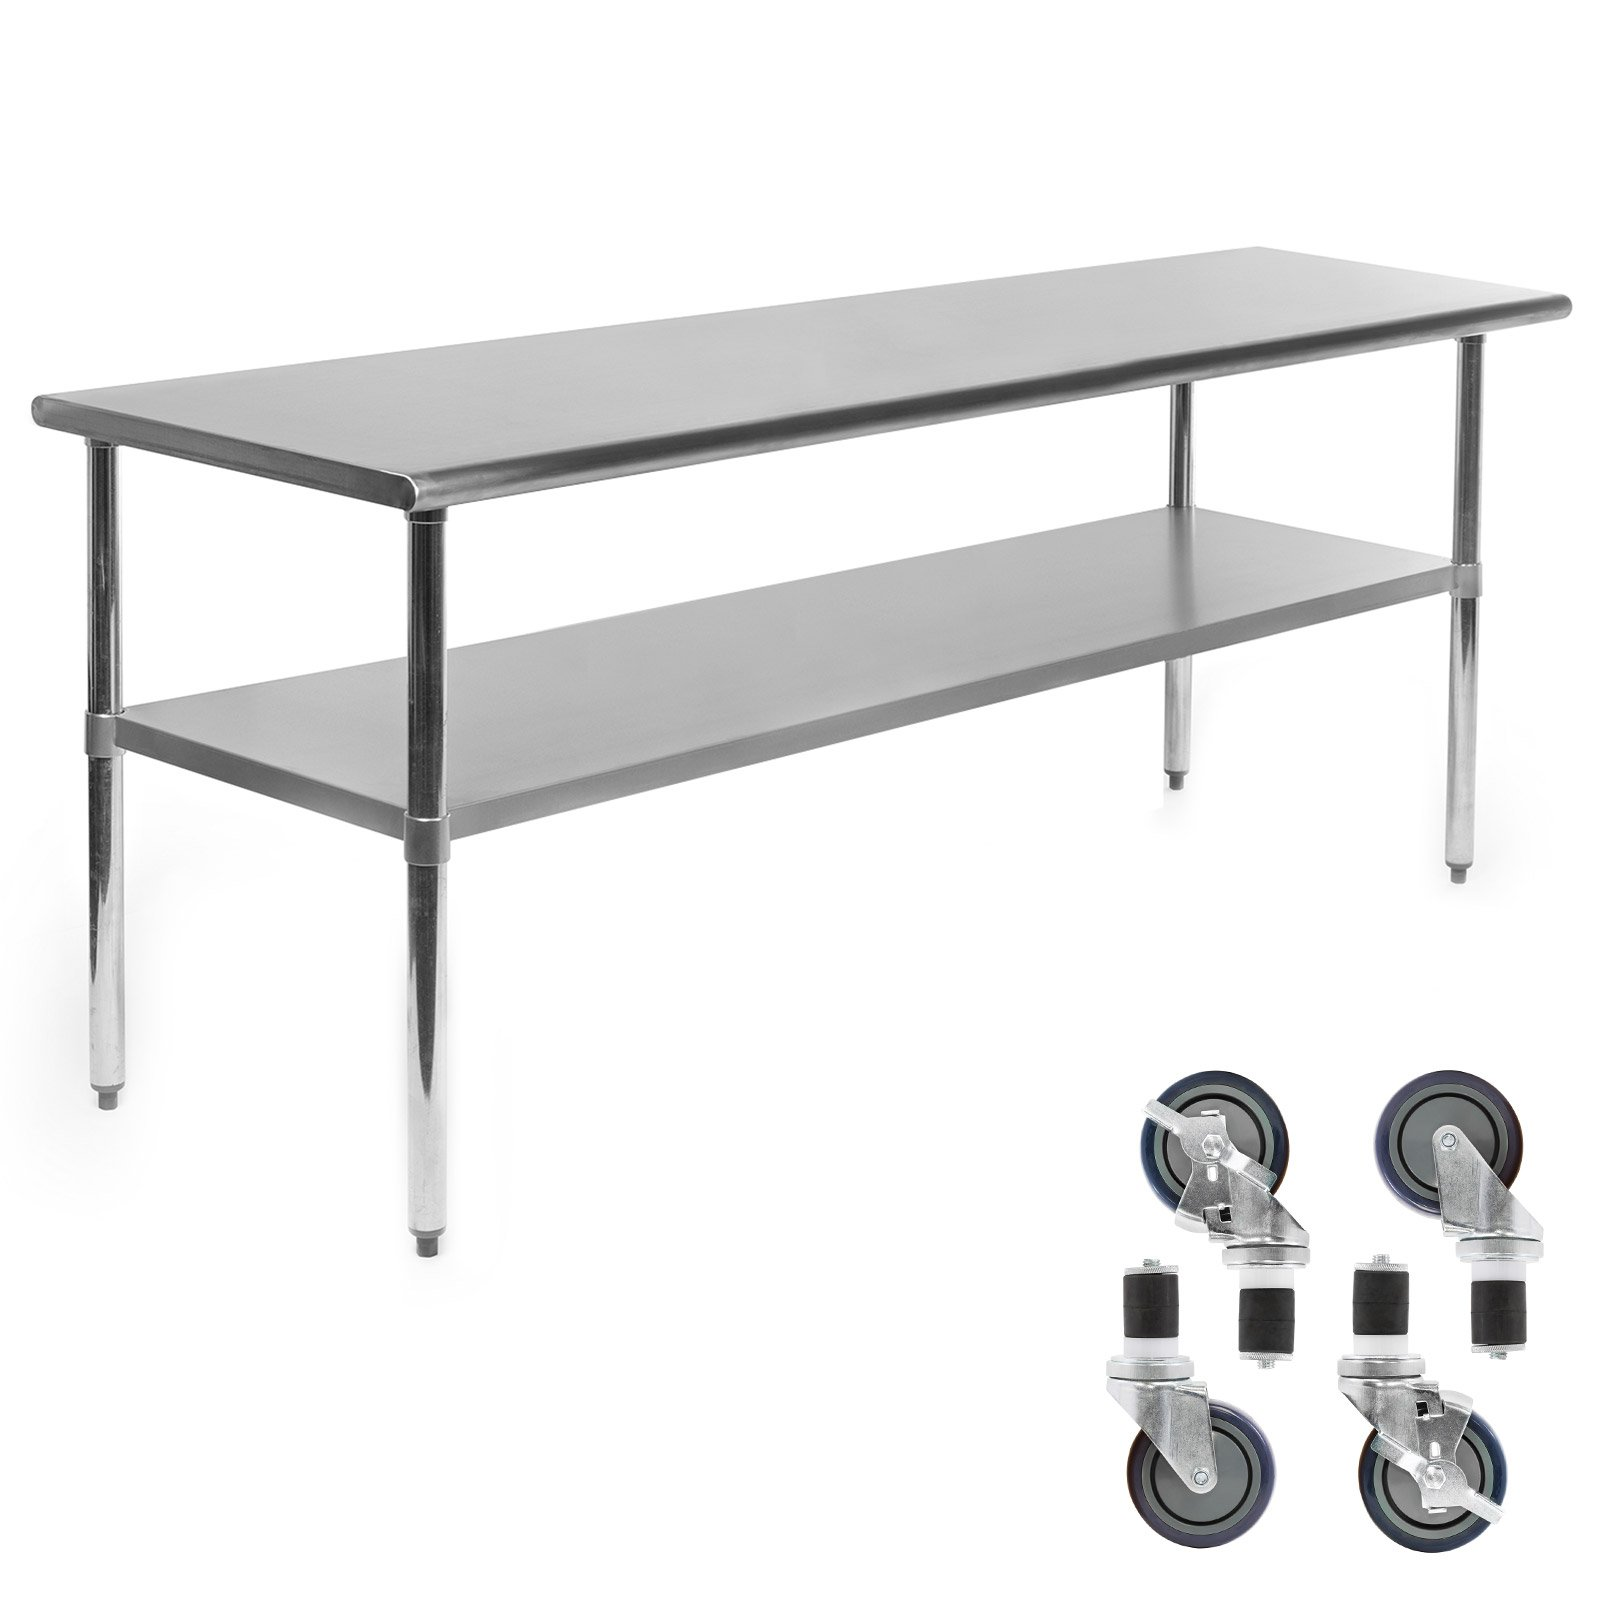 Gridmann NSF Stainless Steel Commercial Kitchen Prep & Work Table w/ 4 Casters (Wheels) - 72 in. x 24 in. by Gridmann (Image #2)